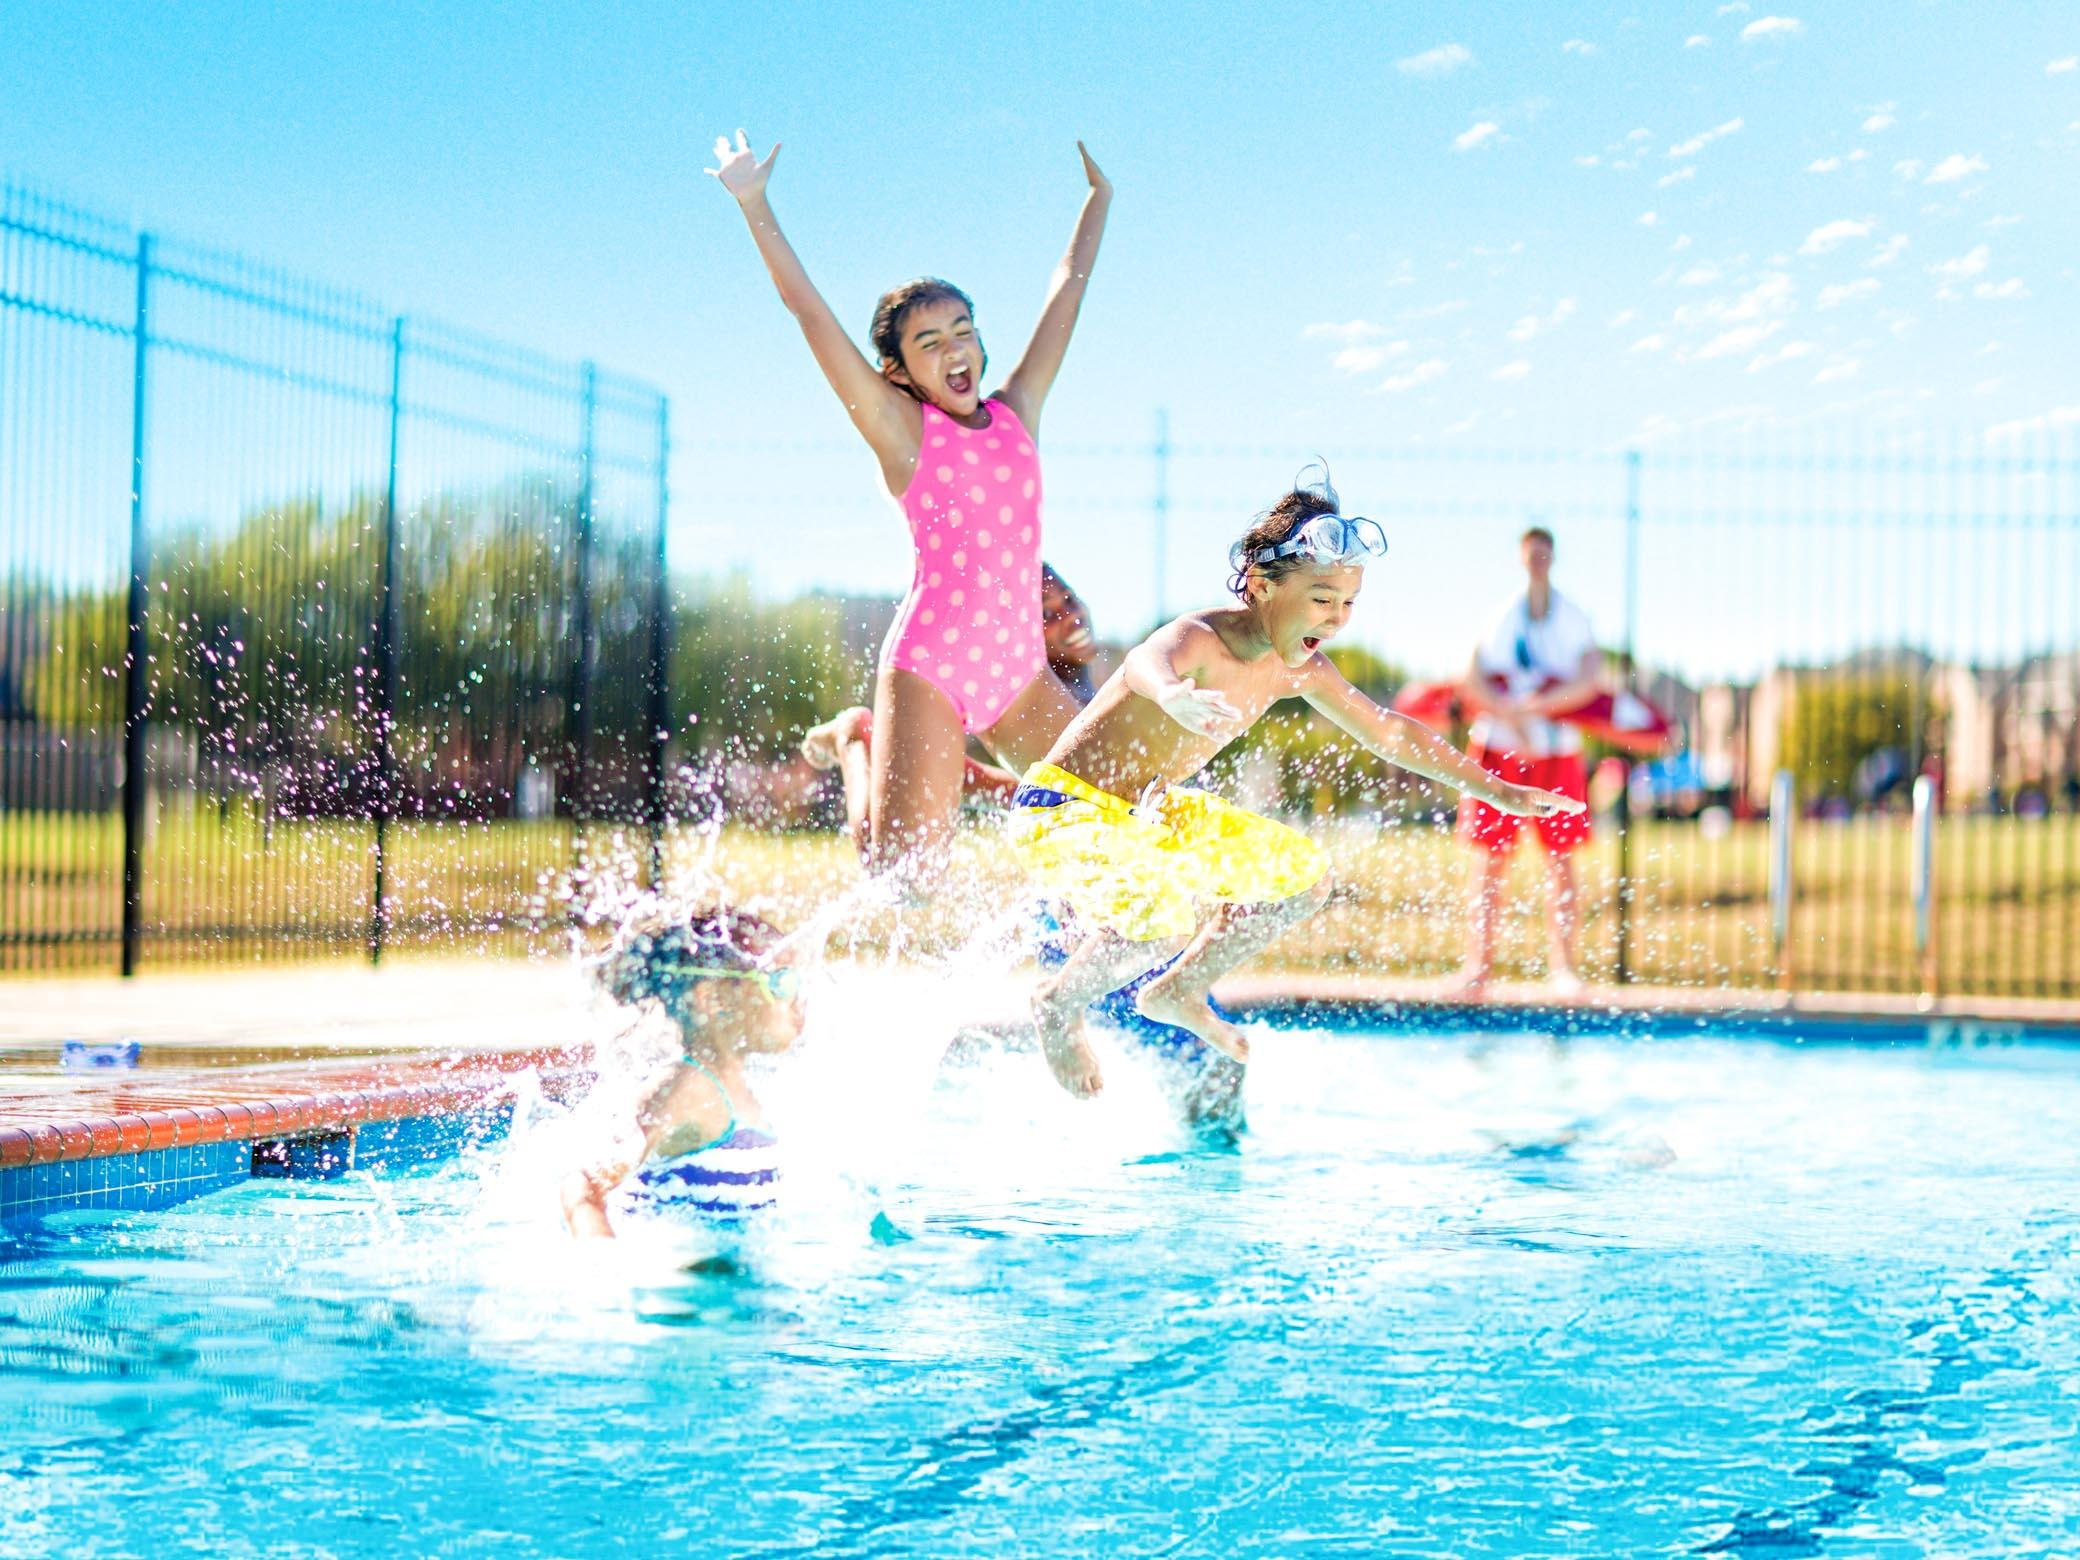 Kids jump into outdoor pool